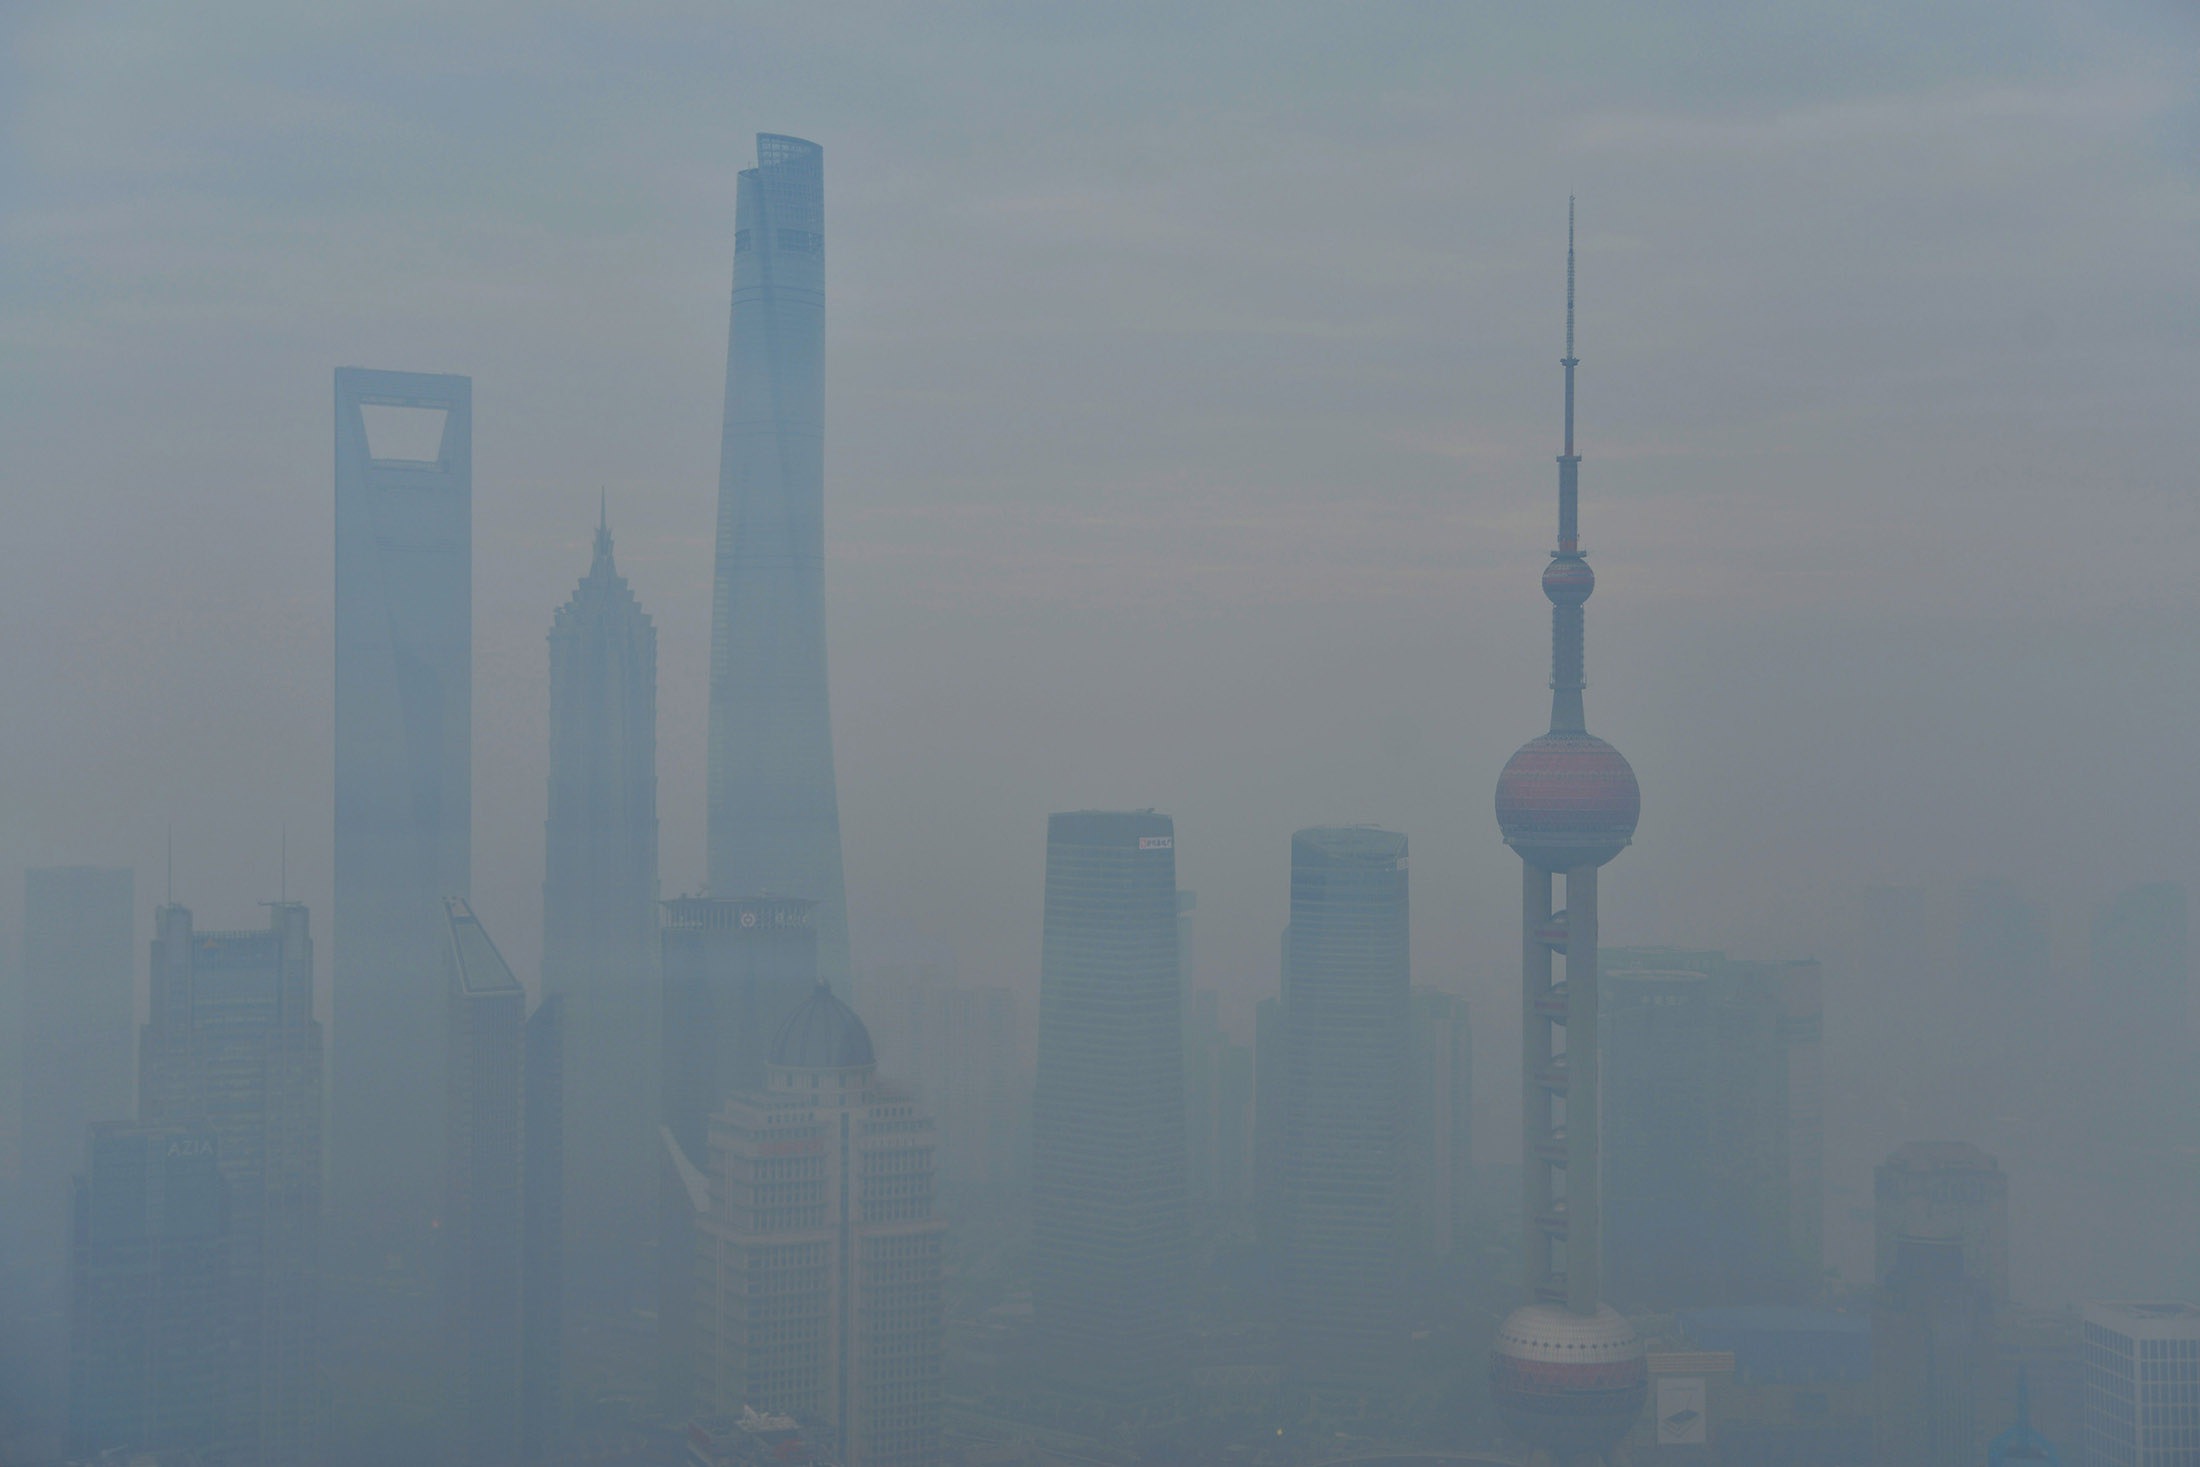 Shanghai Warns People to Stay Indoors on 'Severe' Air Pollution - Bloomberg